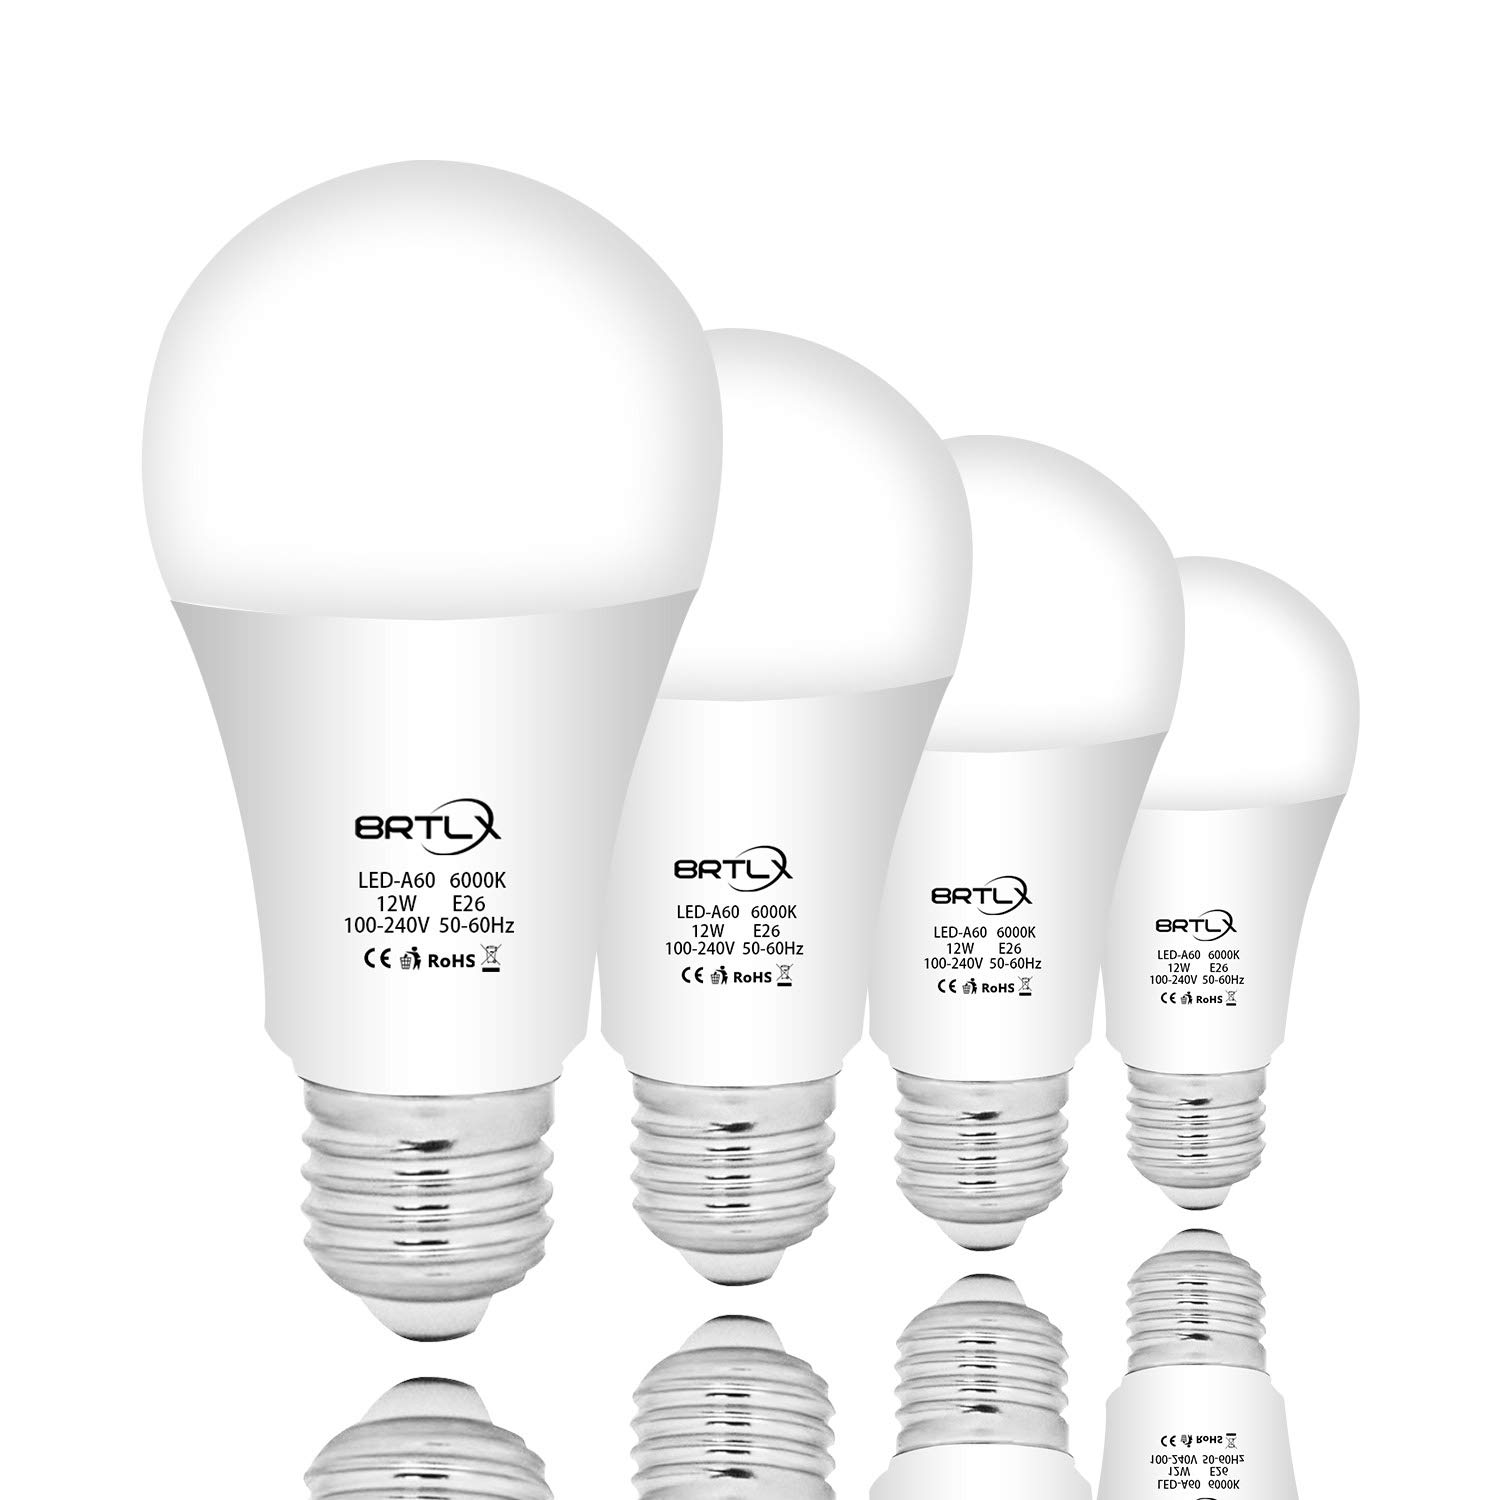 BRTLX A60 12W E26 LED Bulb 6000k Cool White 960lm 220°Not Dimmable 4 Pack